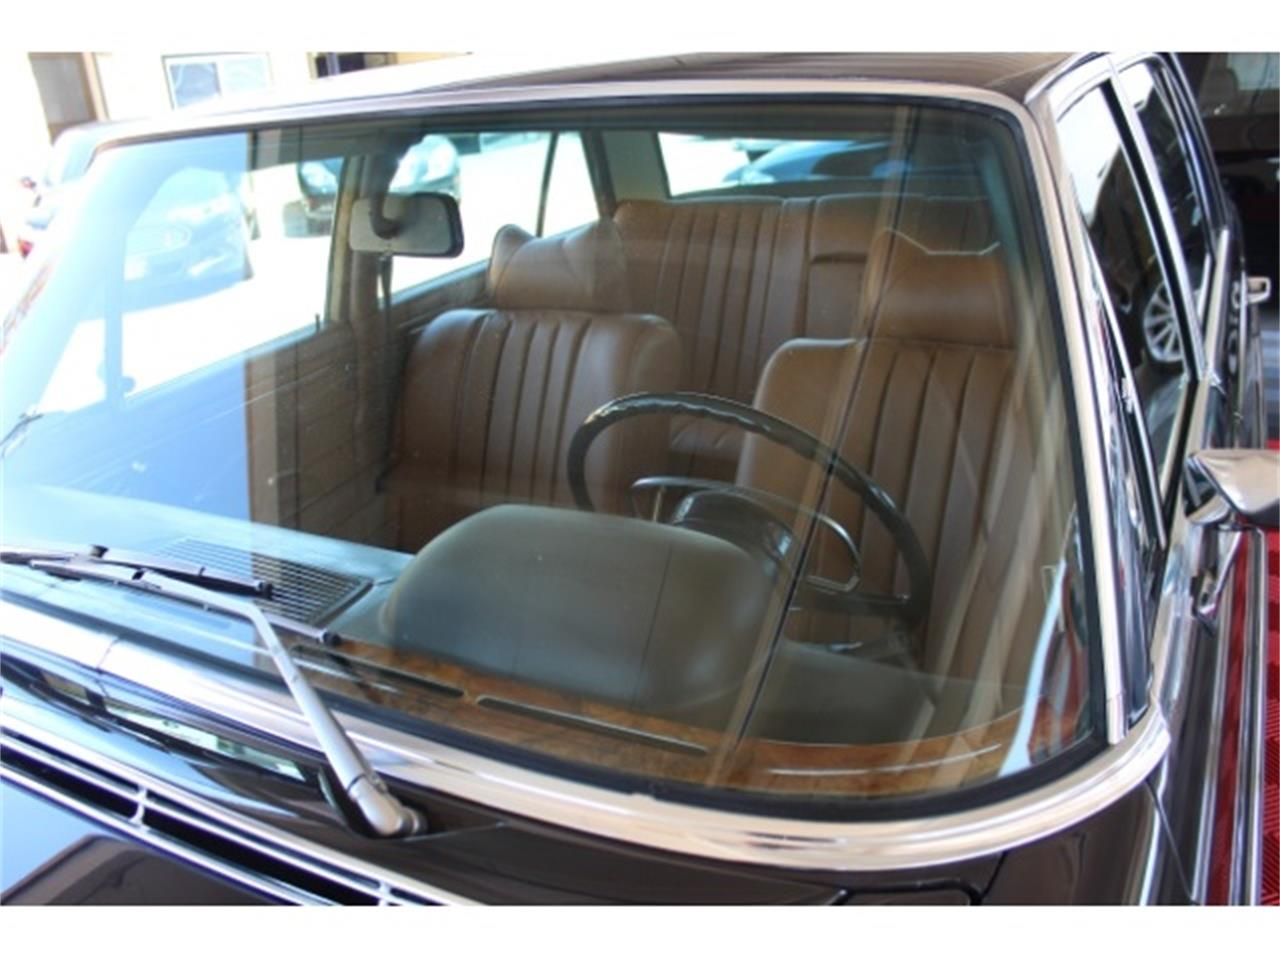 1972 Mercedes-Benz 300SEL for sale in Sherman Oaks, CA – photo 30